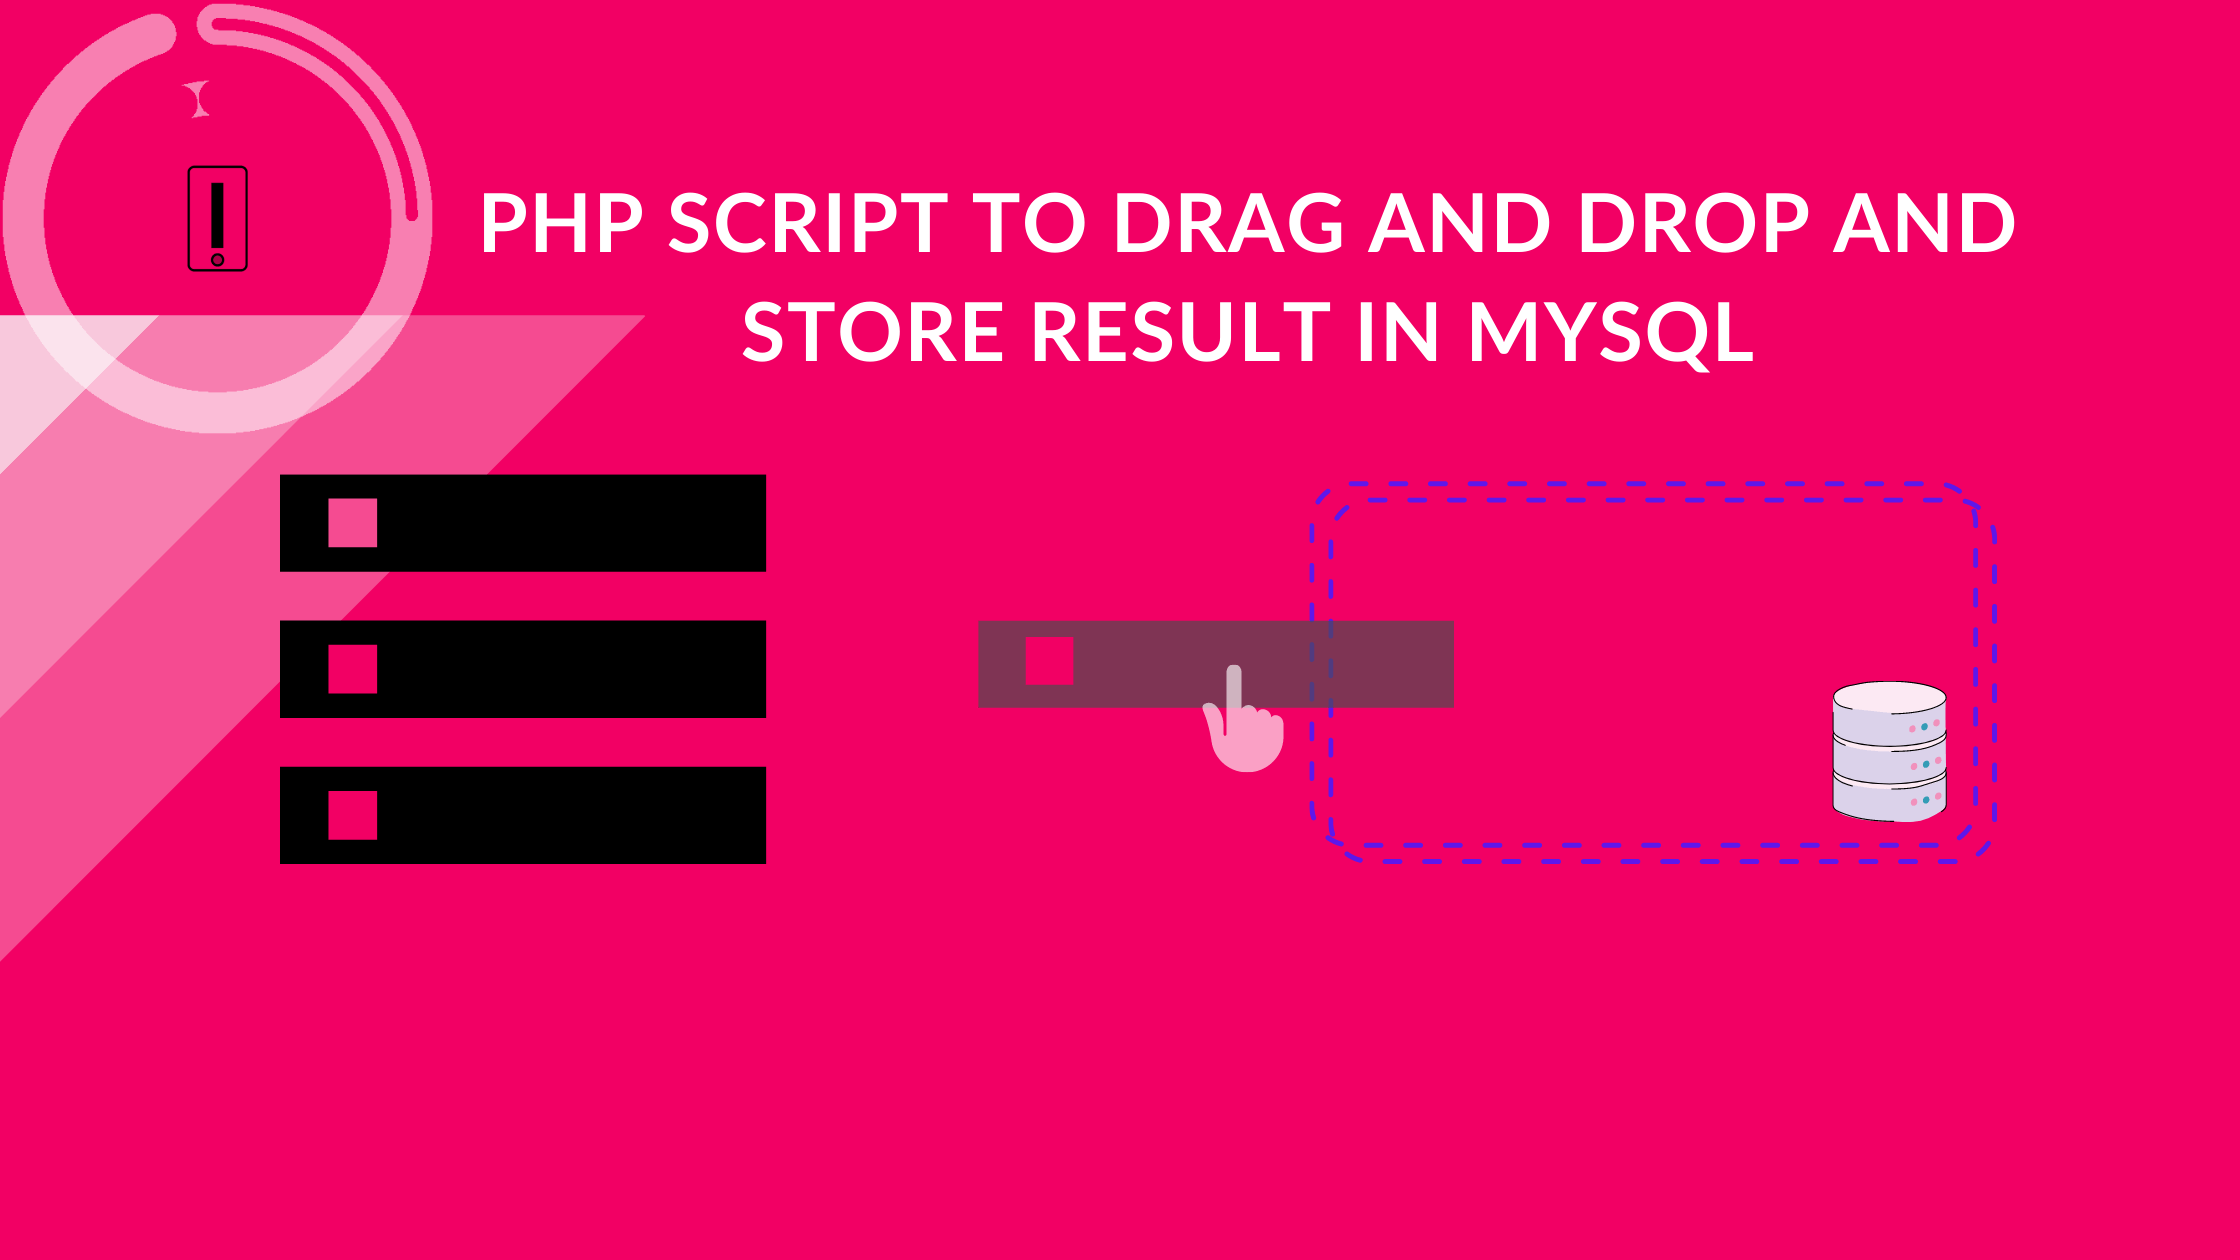 Simple Script in PHP to Drag and Drop jQuery UI and Store Result in MySQL